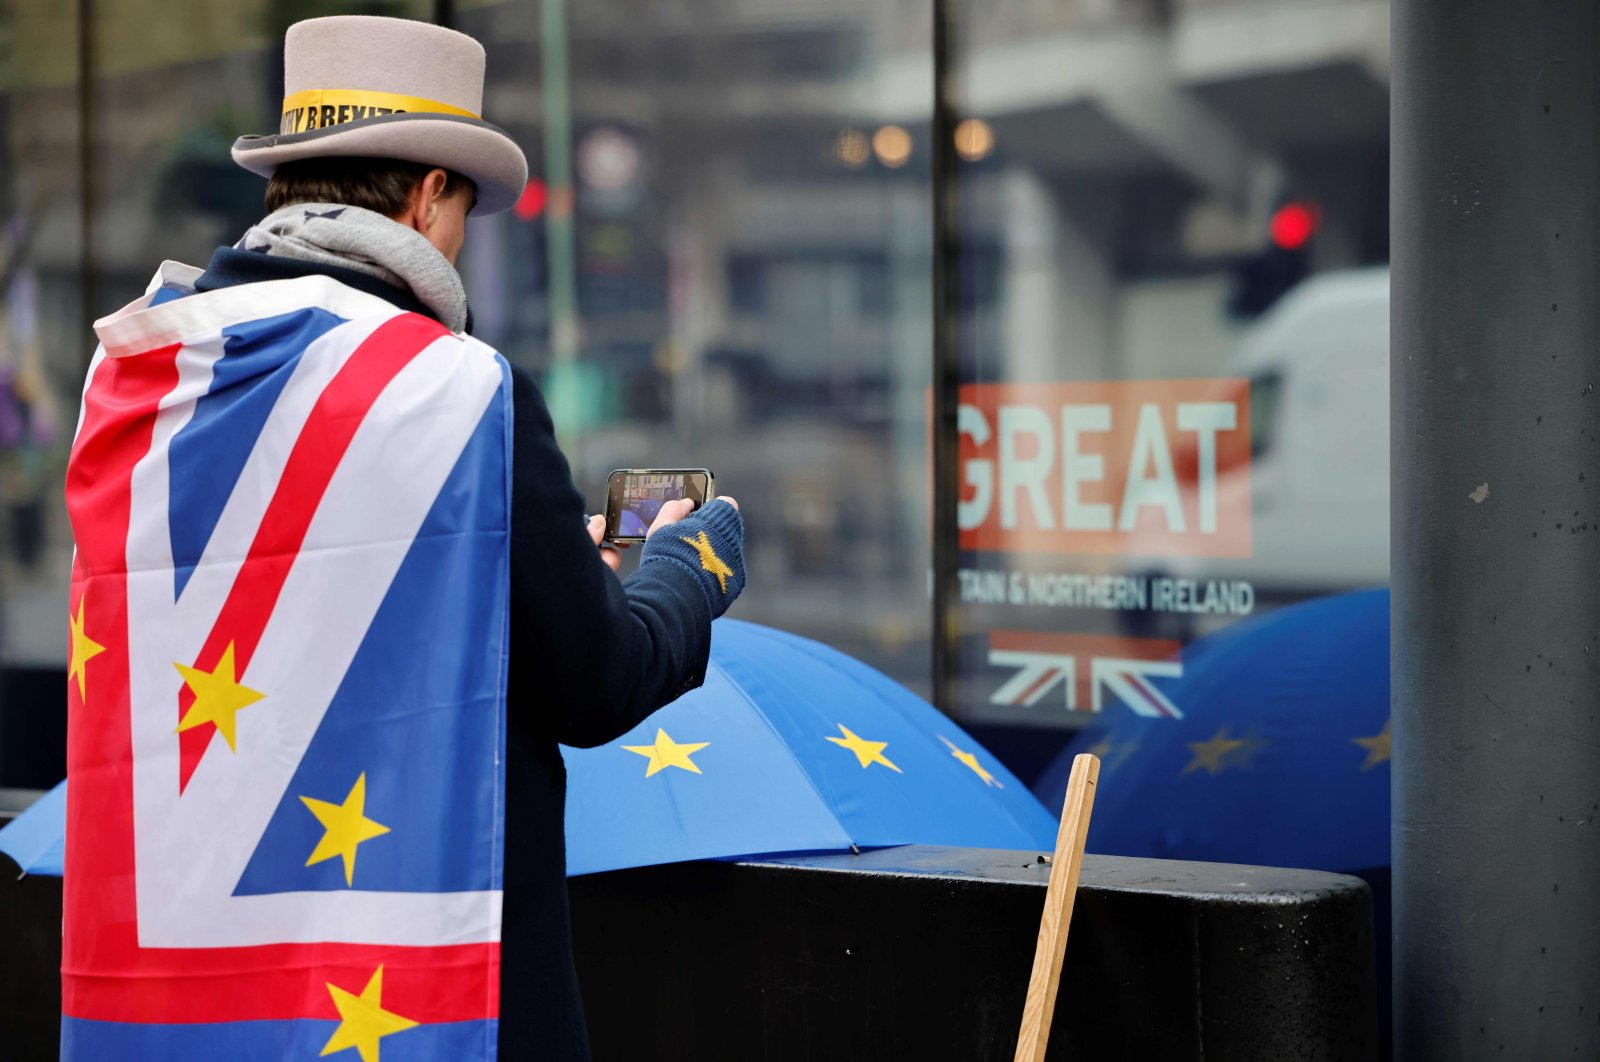 Anti-Brexiteer activist Steve Bray looks at his mobile phone as he protests outside a conference center in central London on December 4, 2020, as talks continue on a trade deal between the EU and the UK. (AFP Photo)